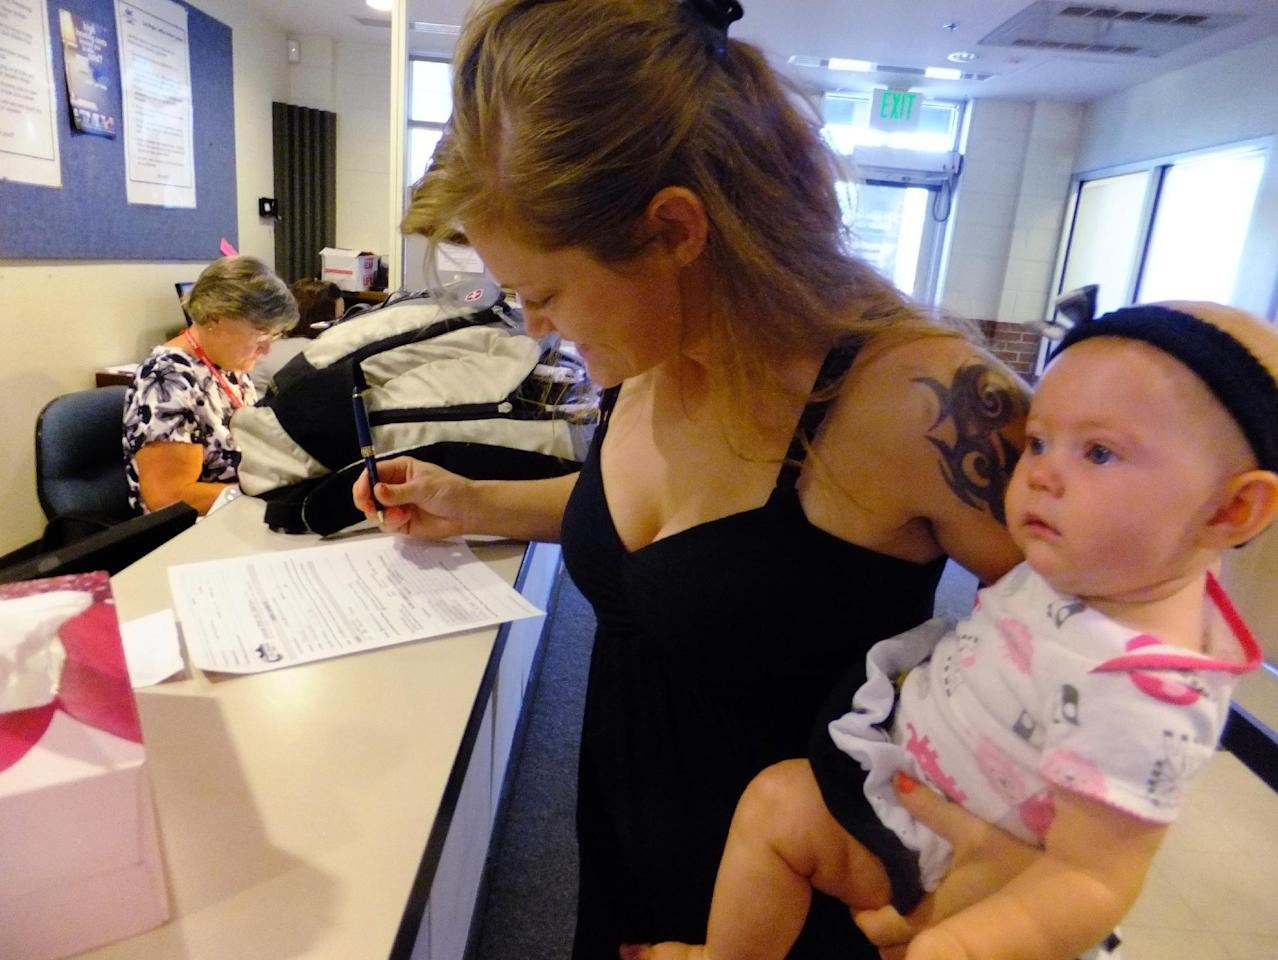 In this July 16, 2012, photo, Laura Fritz, 27, left, with her daughter Adalade Goudeseune fills out a form at the Jefferson Action Center, an assistance center in the Denver suburb of Lakewood. Both Fritz grew up in the Denver suburbs a solidly middle class family, but she and her boyfriend, who has struggled to find work, and are now relying on government assistance to cover food and $650 rent for their family. The ranks of America's poor are on track to climb to levels unseen in nearly half a century, erasing gains from the war on poverty in the 1960s amid a weak economy and fraying government safety net. Census figures for 2011 will be released this fall in the critical weeks ahead of the November elections. (AP Photo/Kristen Wyatt)